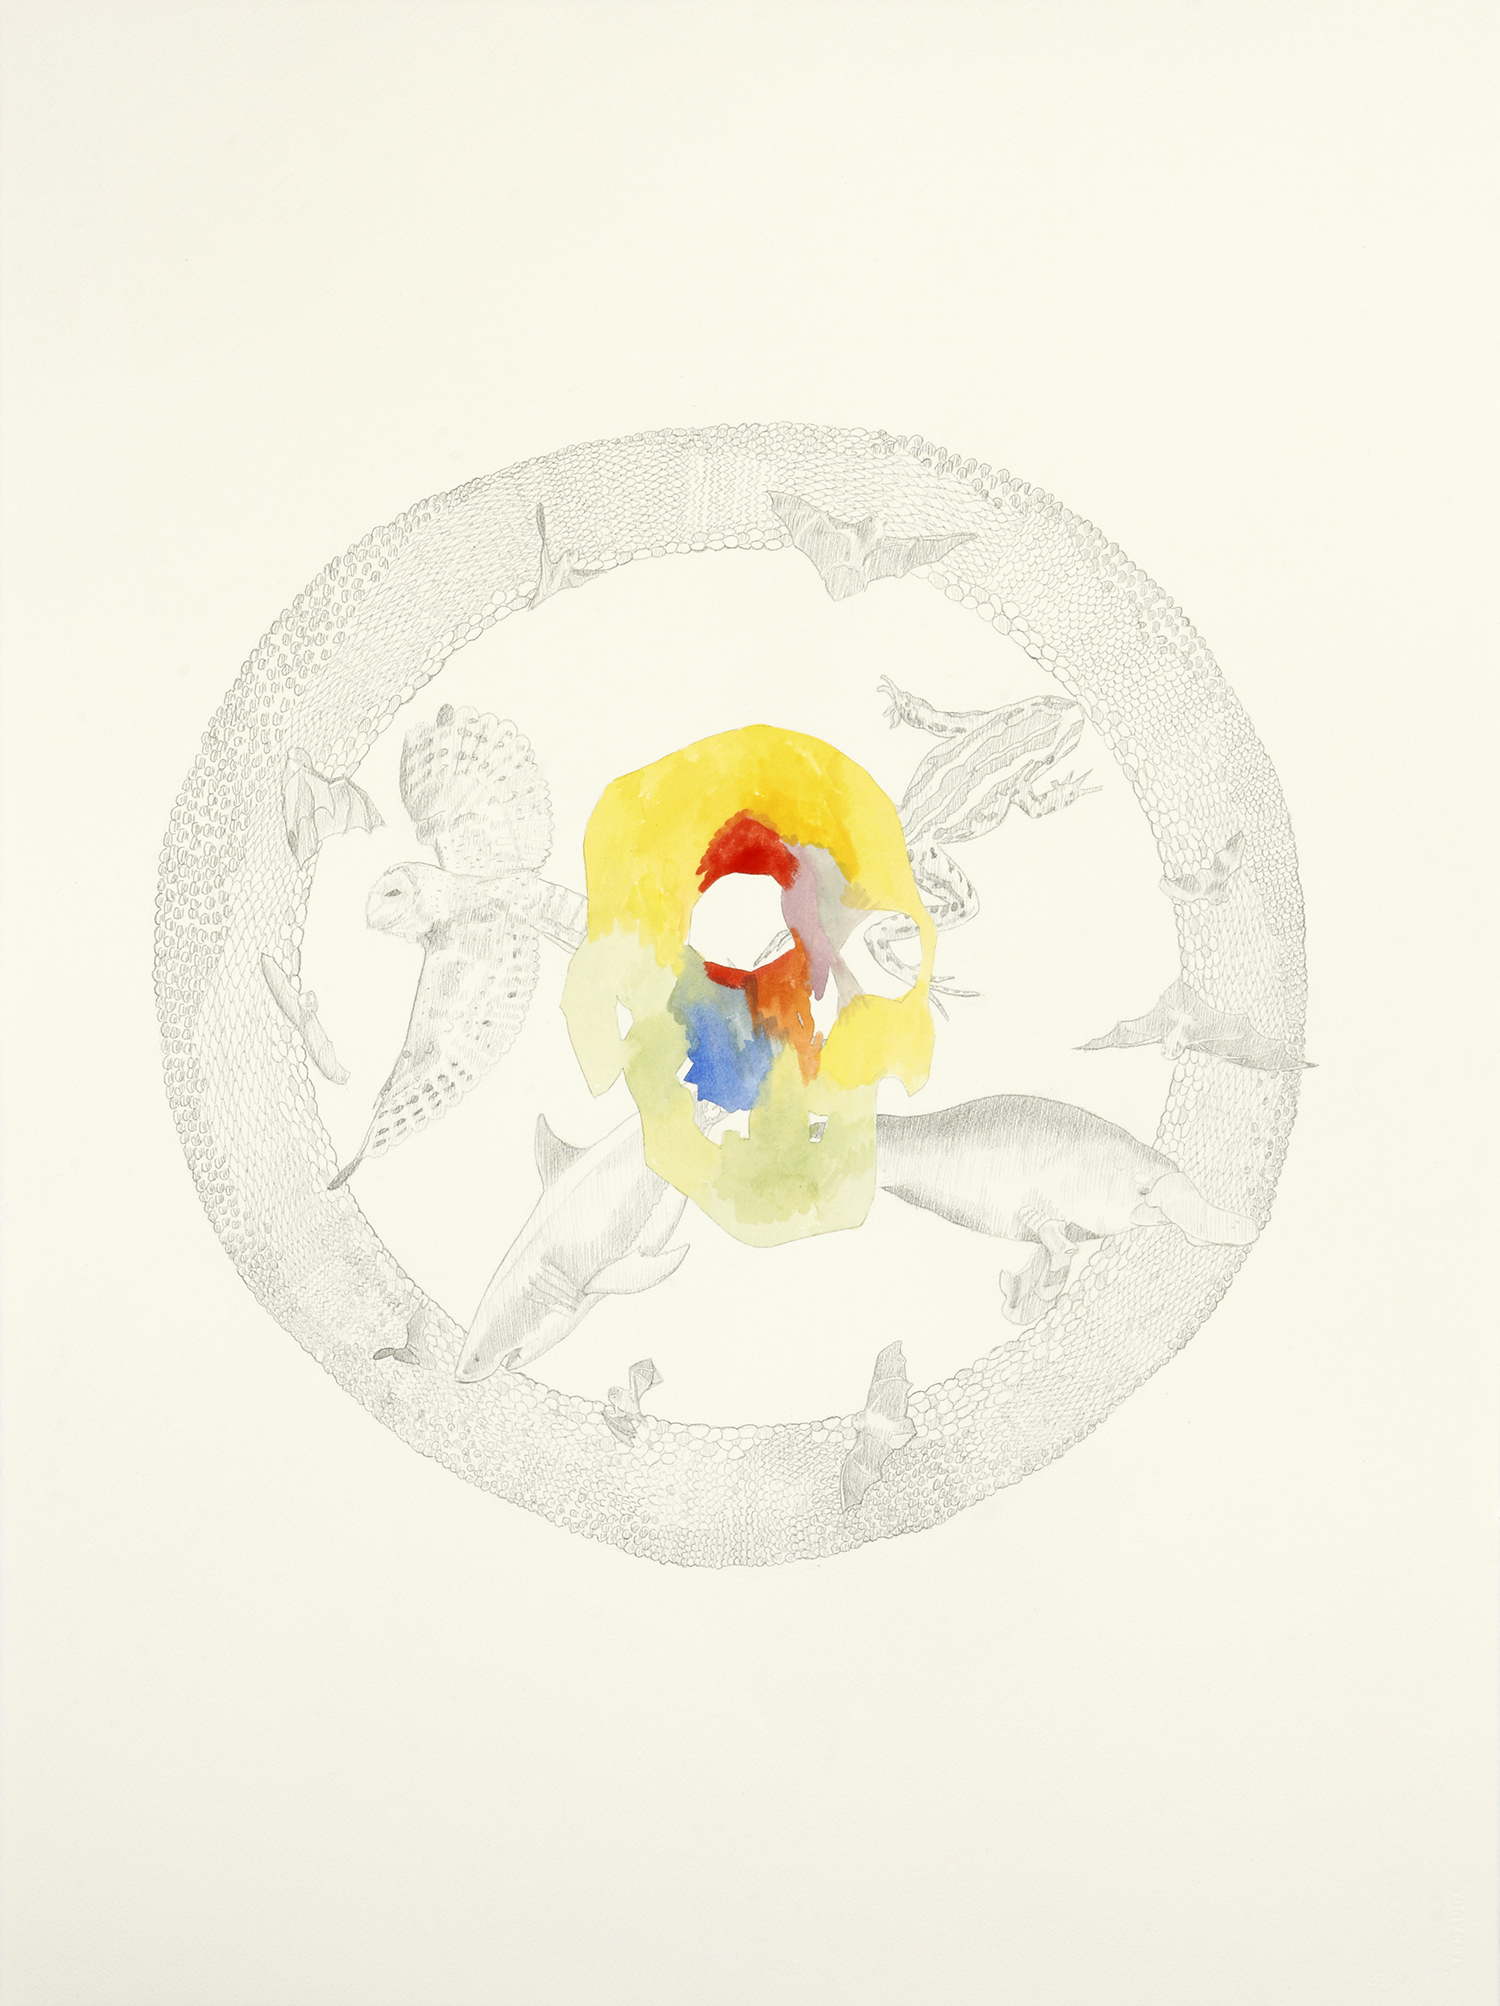 Circle Of Life, 2011, Watercolour and pencil on paper, 56.0 x 76.0 cm, Photo: Sam Scoufos